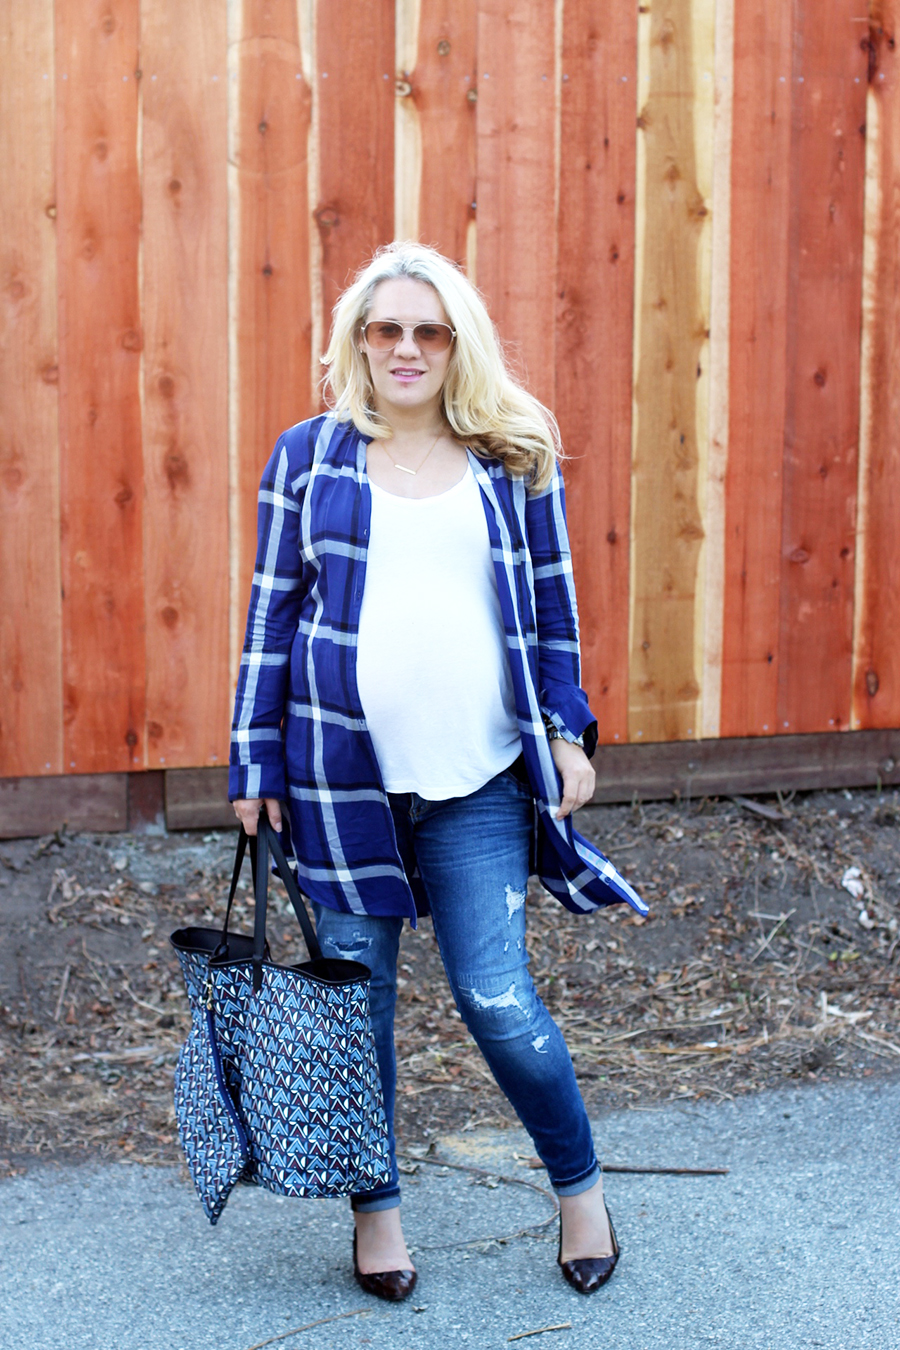 Plaid Shirtdress-Maternity Style-Styling Your Baby Bump-Styling Tips-Pregnancy Style-Have Need Want 5